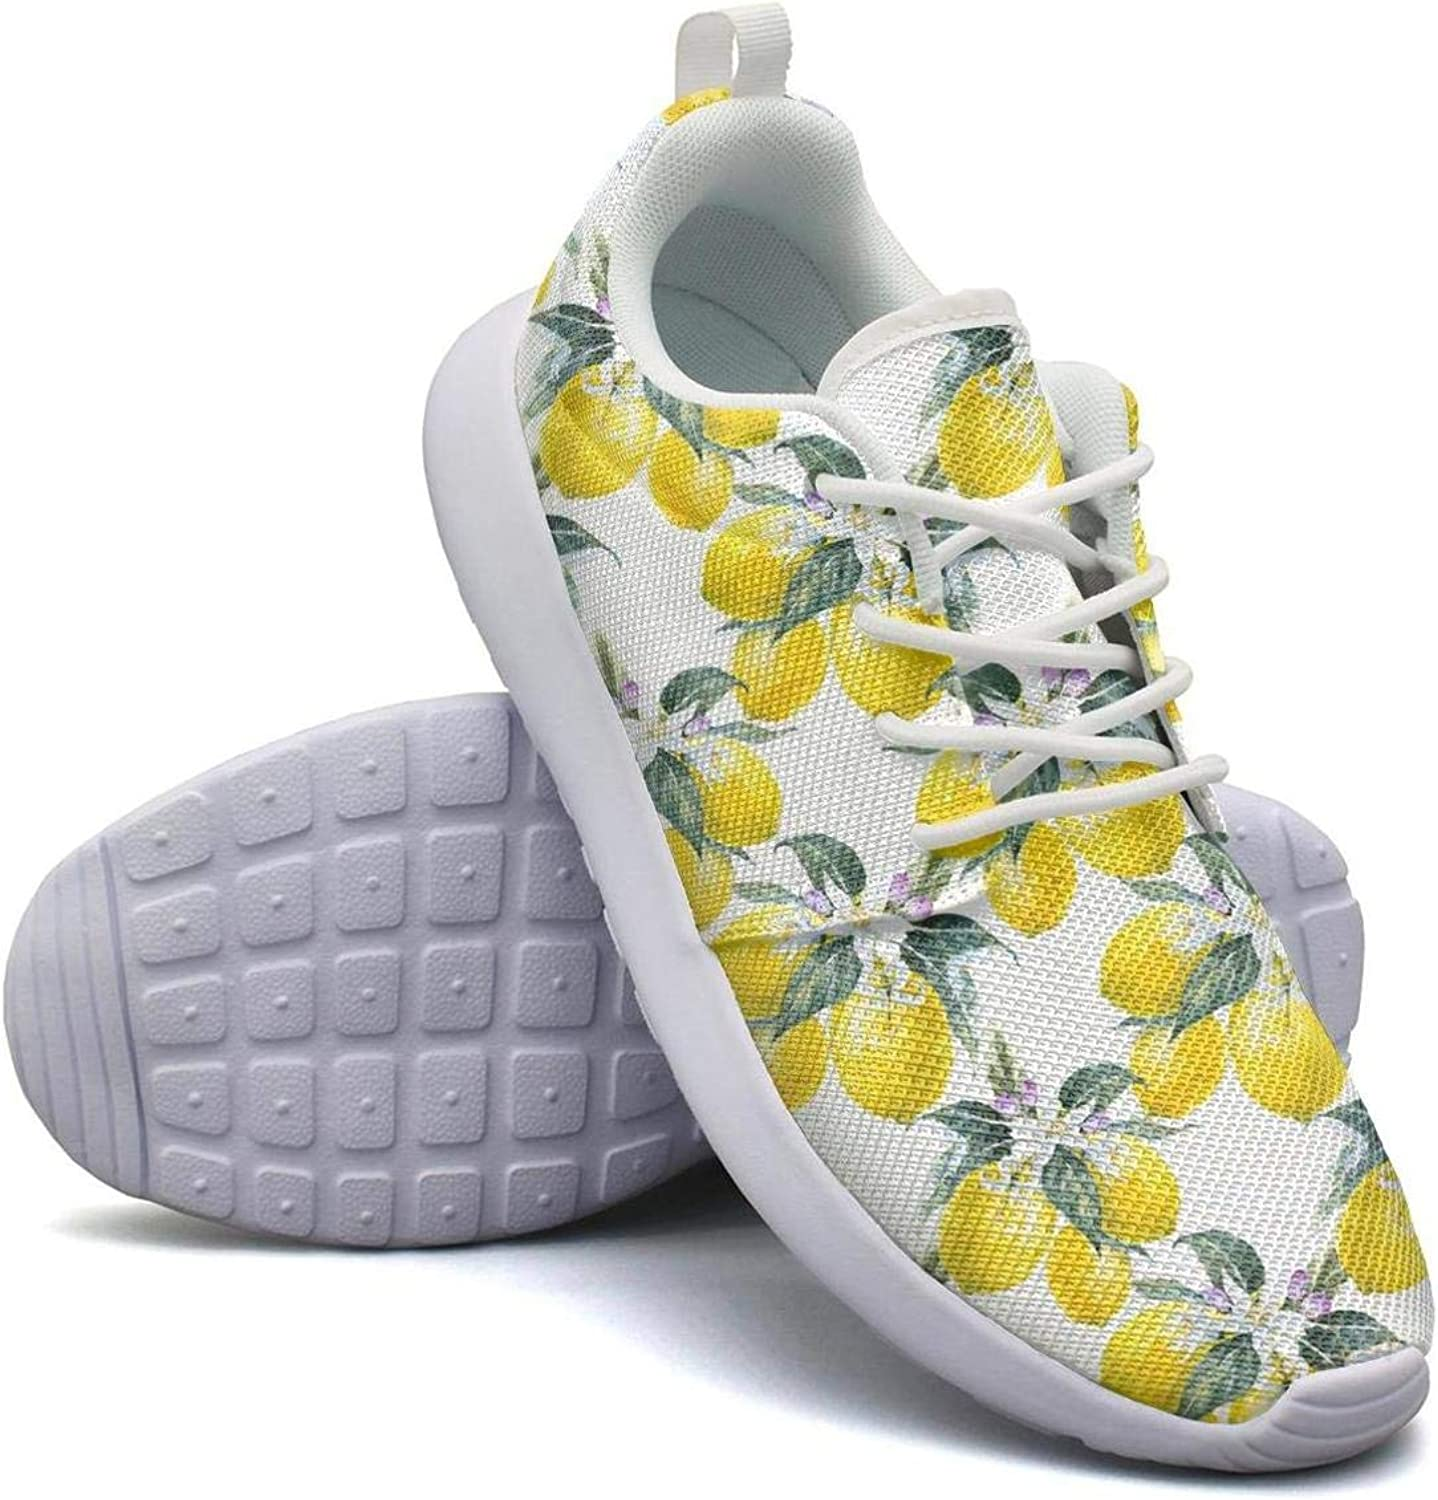 CHALi99 Breathable Female's Lightweight Mesh shoes Lemon with Little Butterfly Sneakers Outdoor Rubber Sole